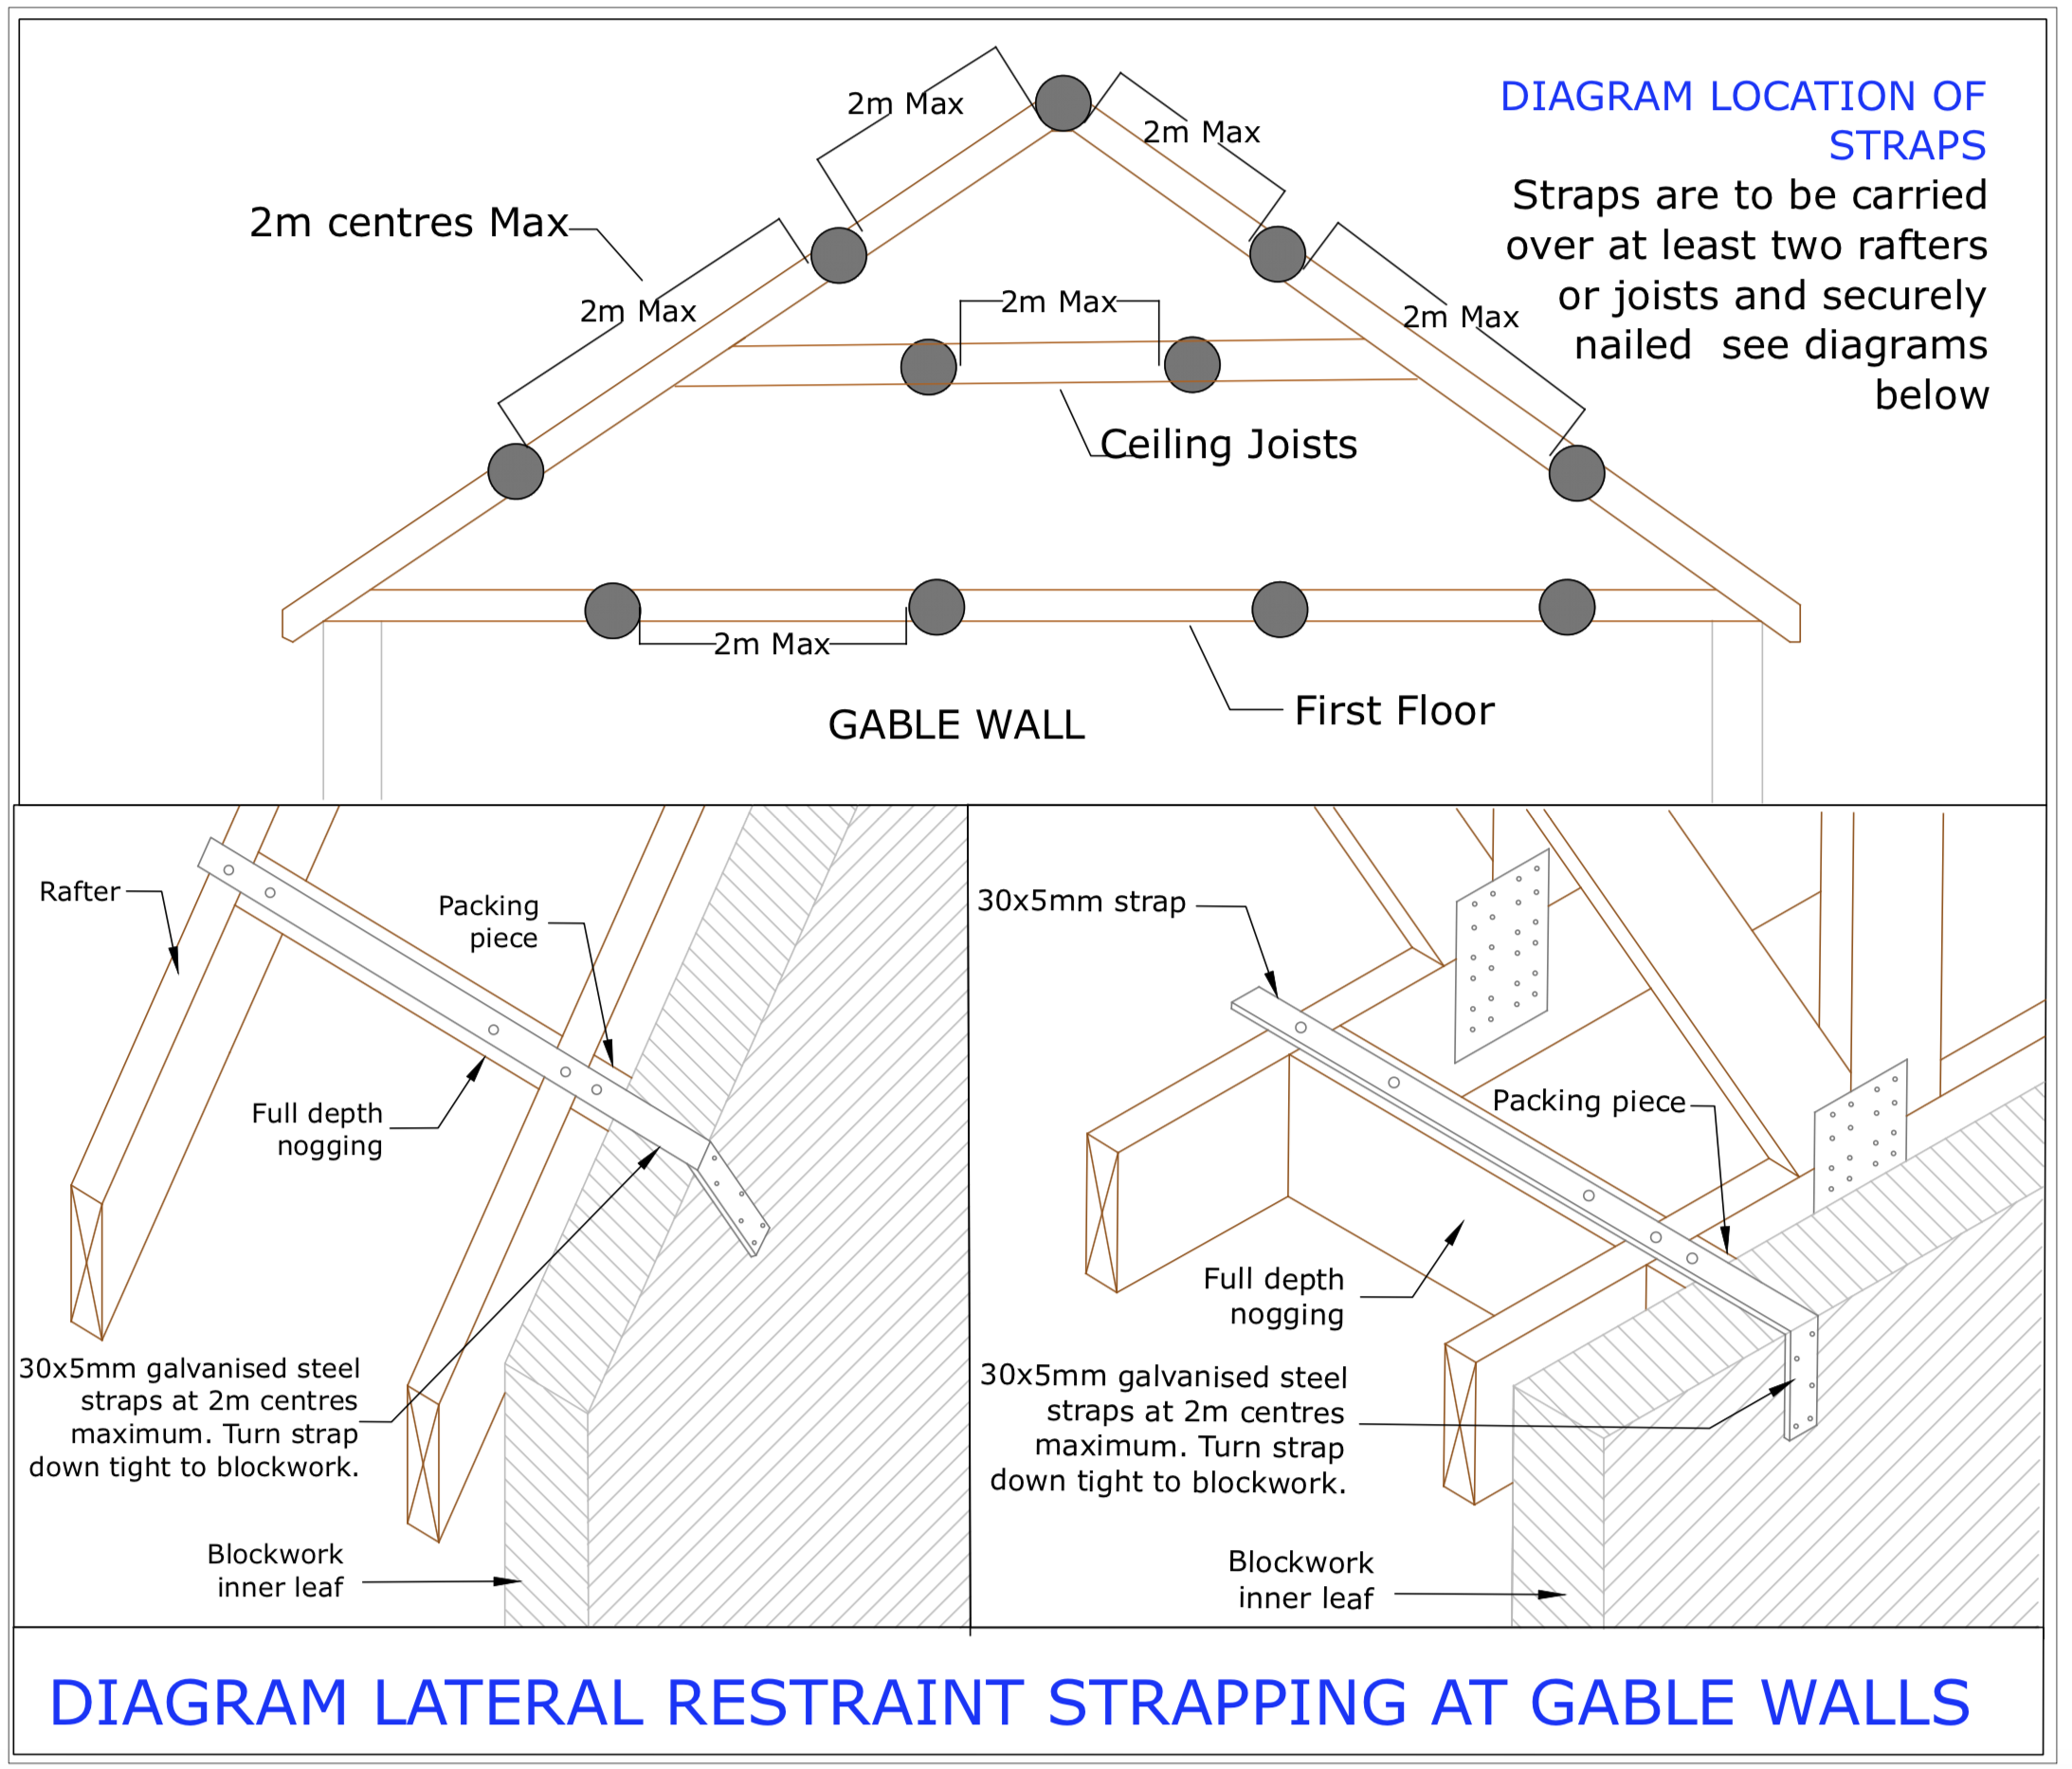 Diagram D54 - Lateral restraint strap locations